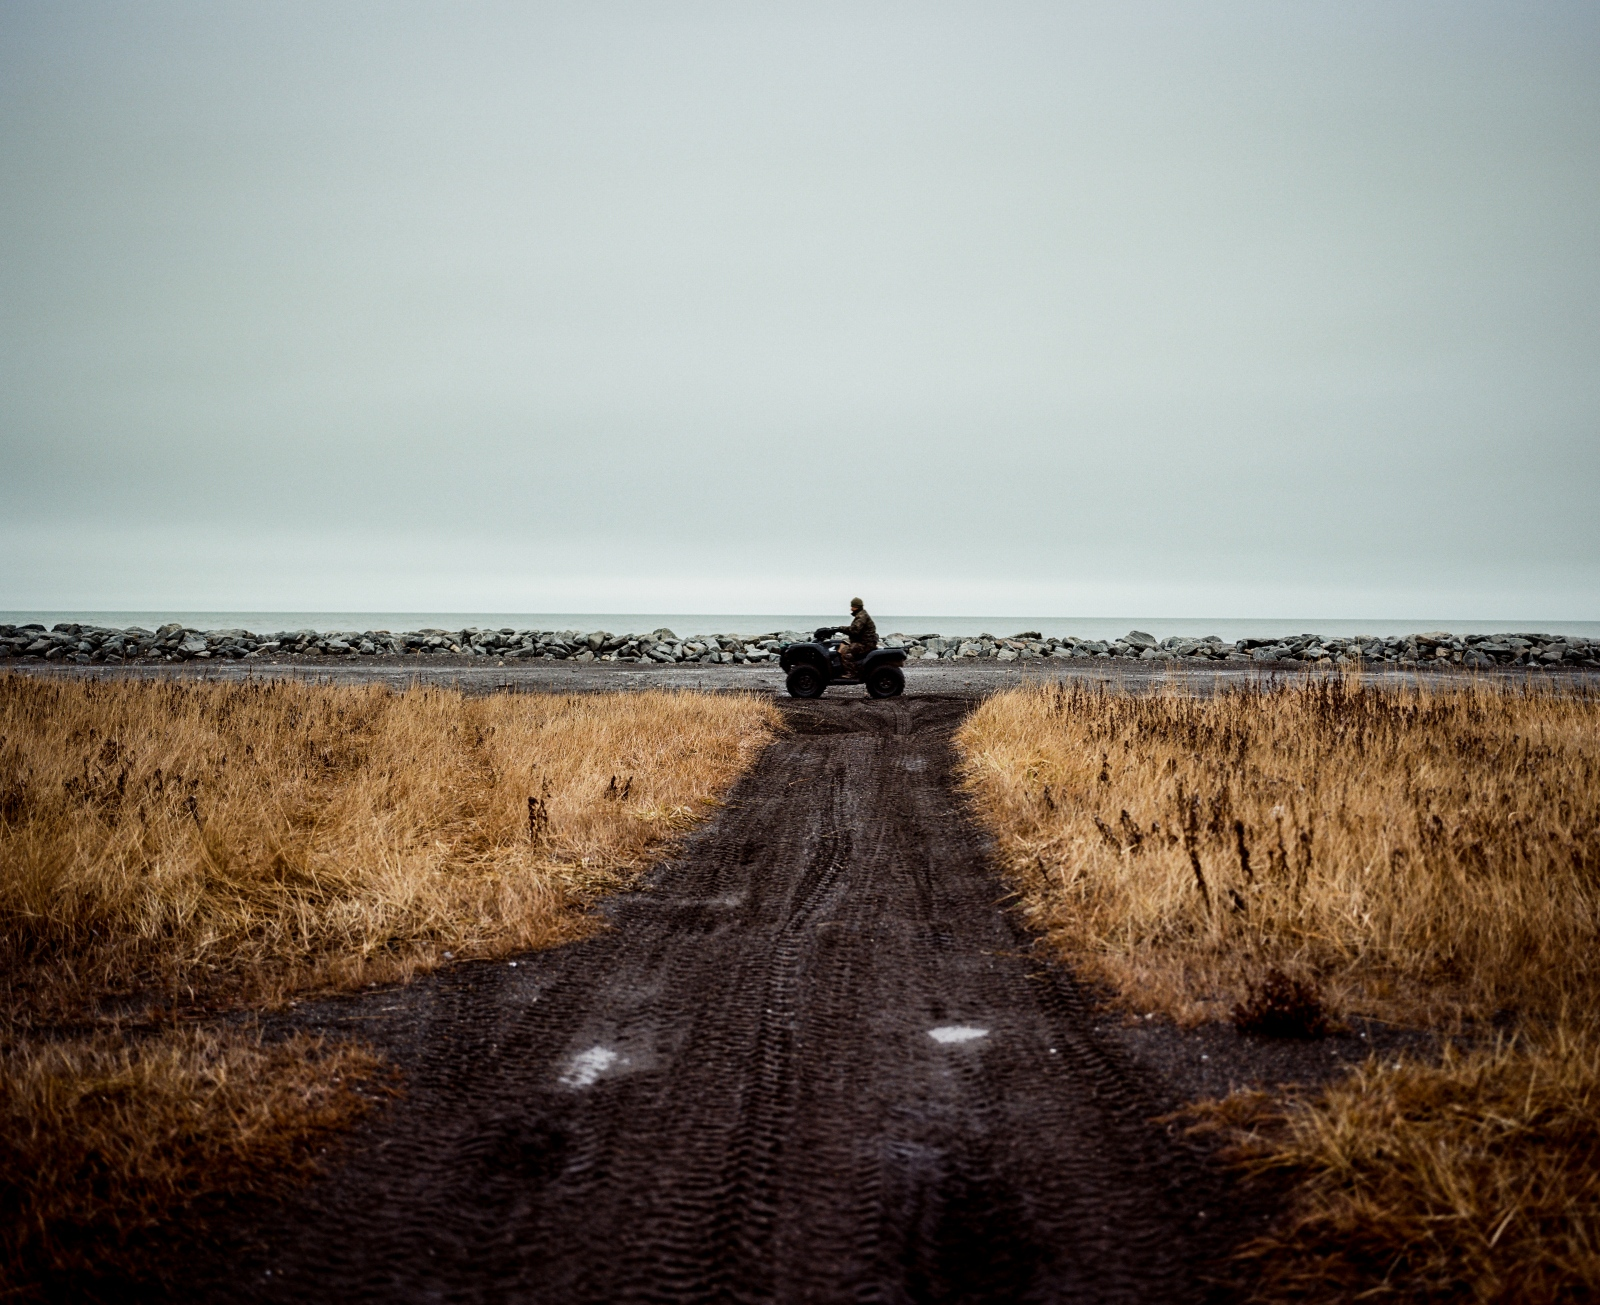 A four-wheeler drives along the sea wall in Kivalina. Because Kivalina is not accessible by road, the most common form of transportation in and around the village is on four wheelers and snow machines.